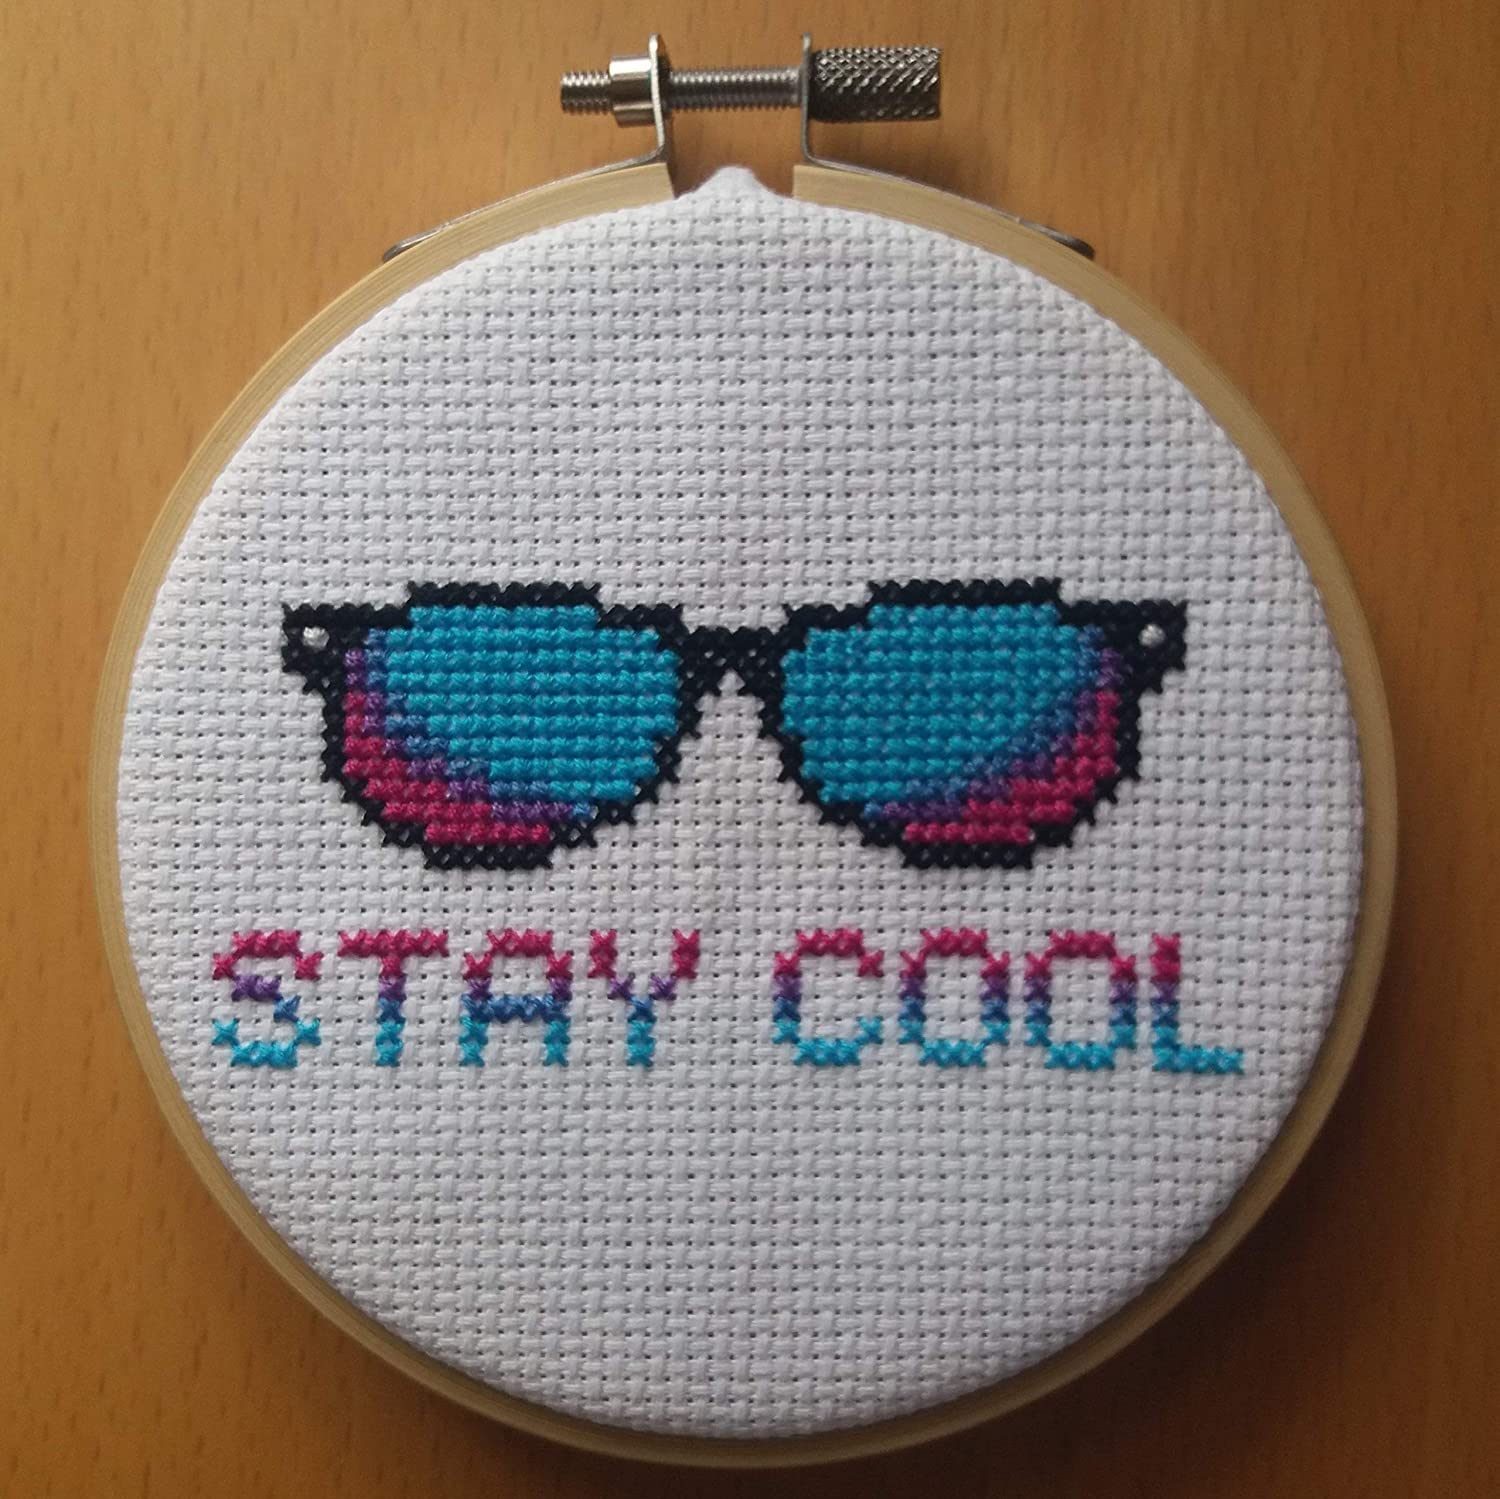 Sunglasses Cross Stitch Kit With Hoop - Beginners Counted Cross Stitch - 'Stay Cool' Summer Cross Stitch